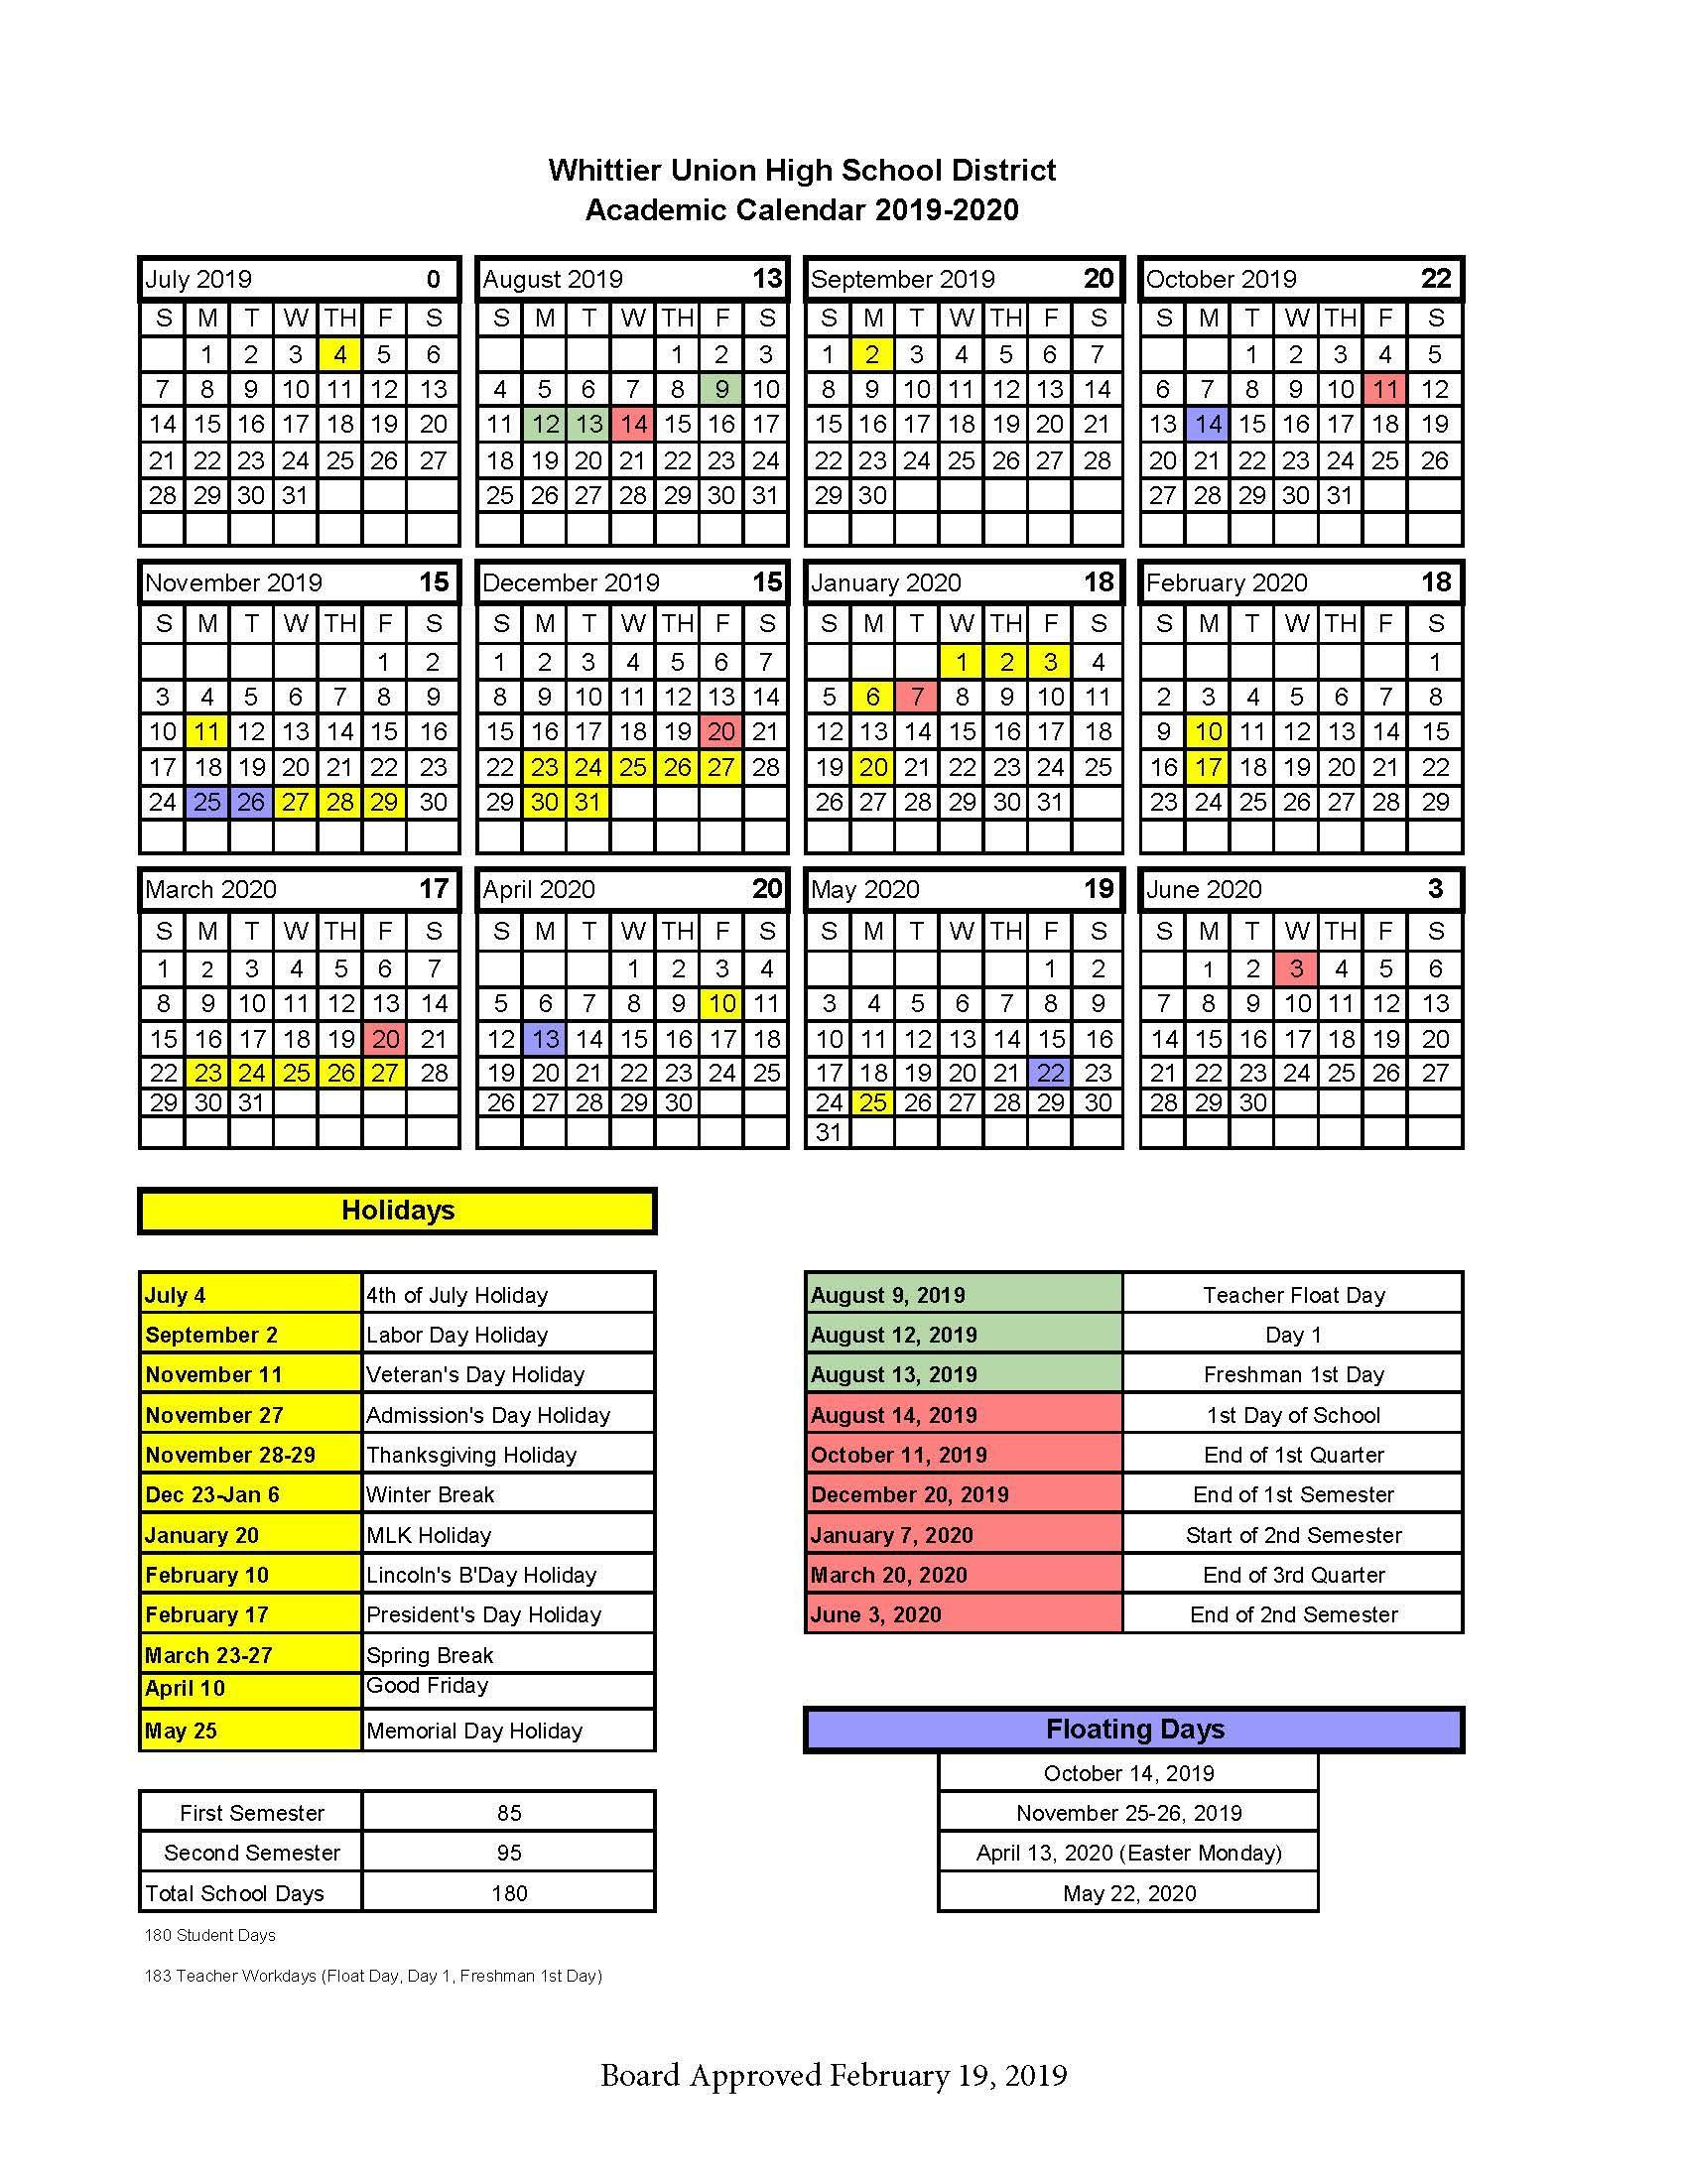 WUHSD Academic Calendars – District Information – Whittier